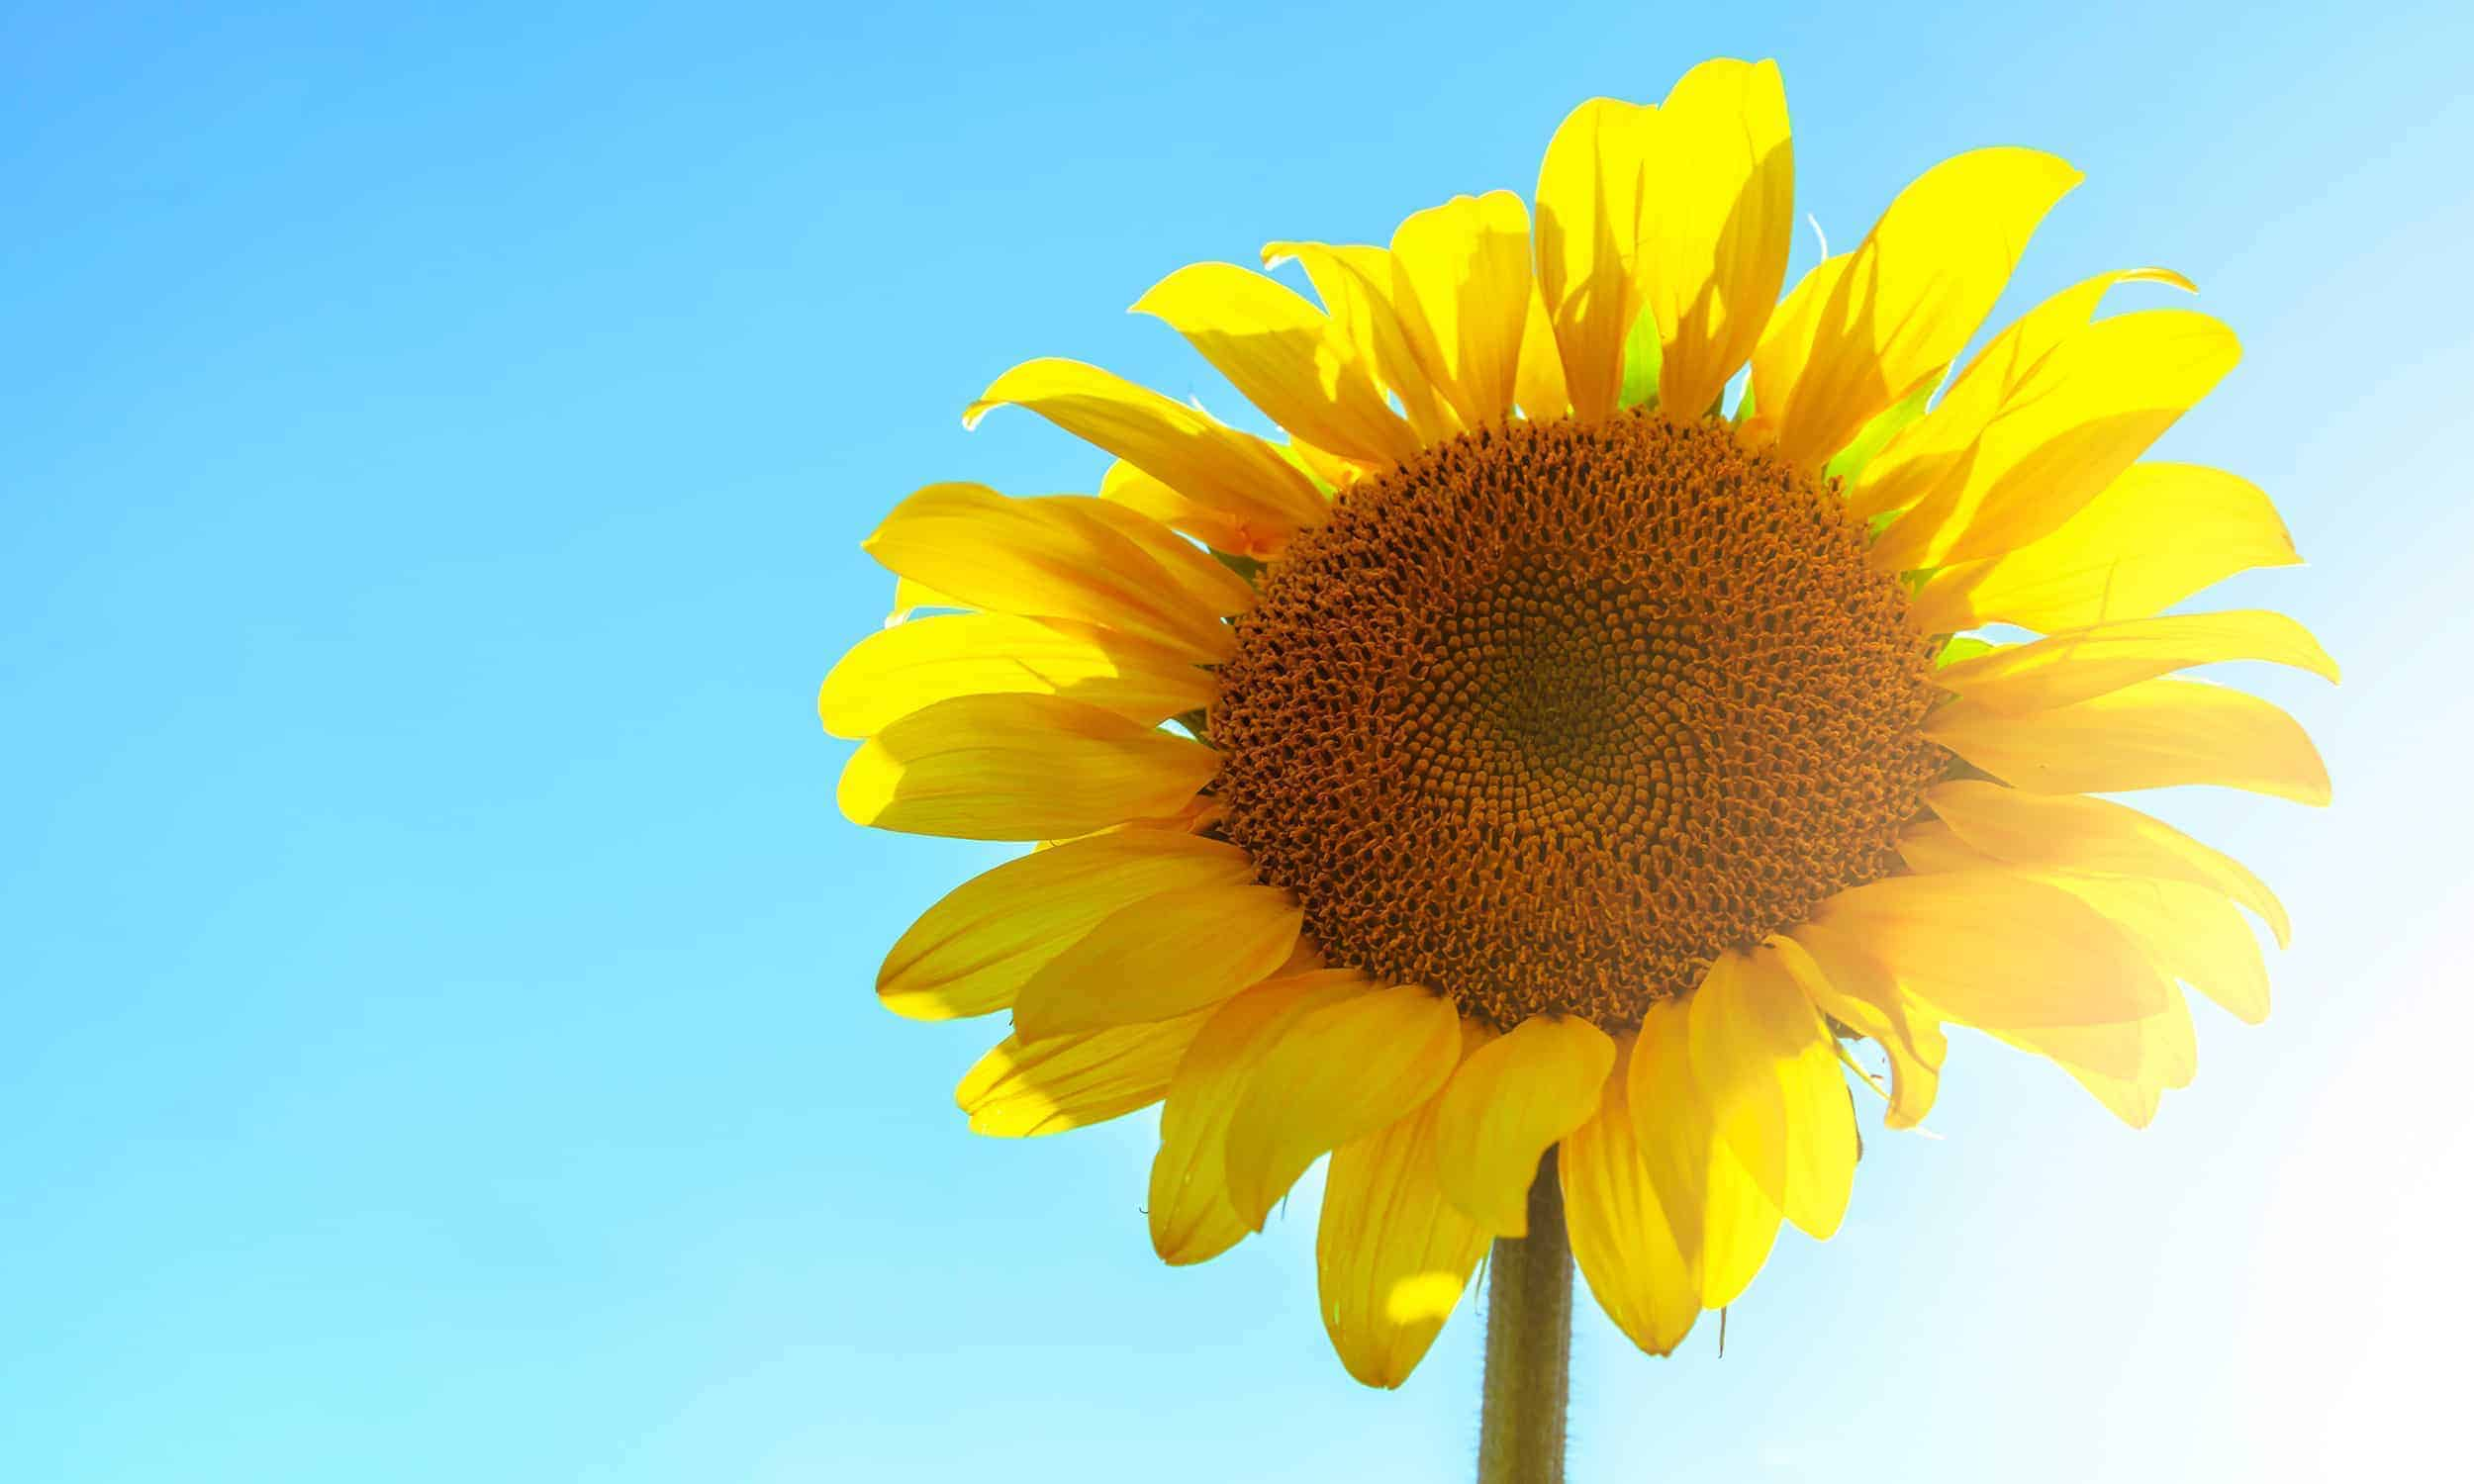 Sun Quotes   Sunshine Quotes   Quotes About the Sun